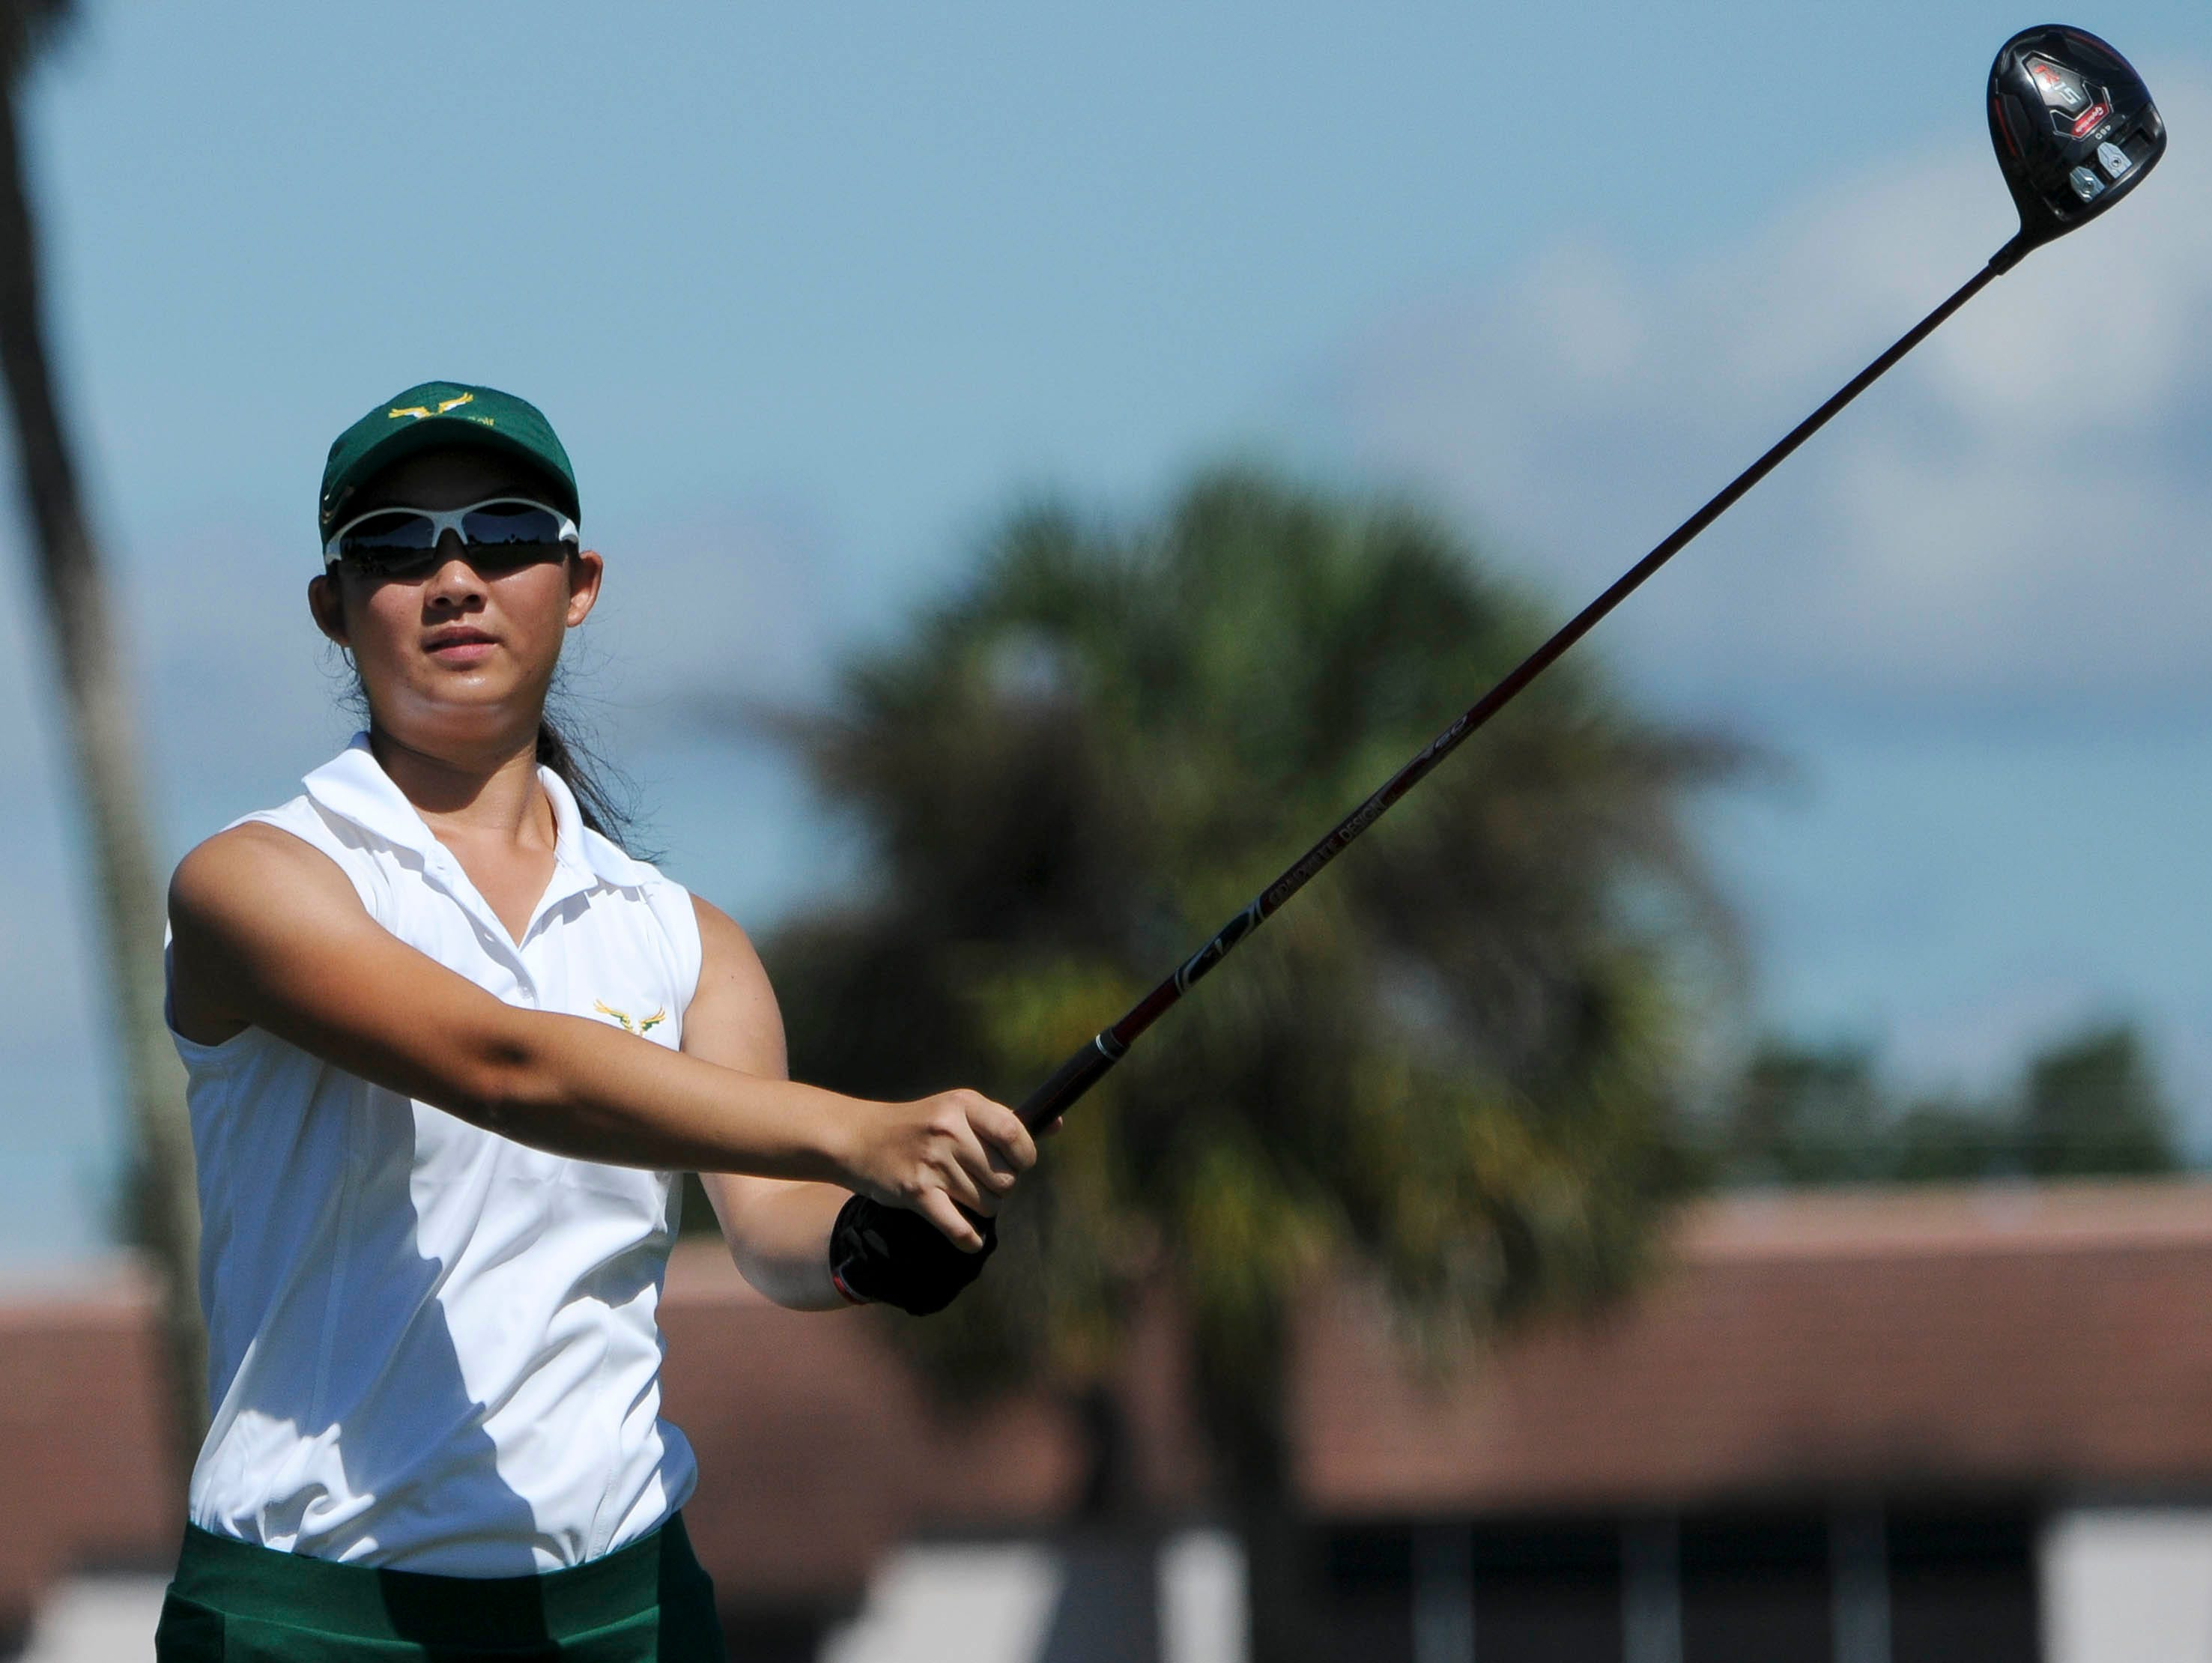 Sophie Liu of Viera watches her tee shot during the Cape Coast Conference girls golf tournament Tuesday. Liu shot a 71 in the tournament.